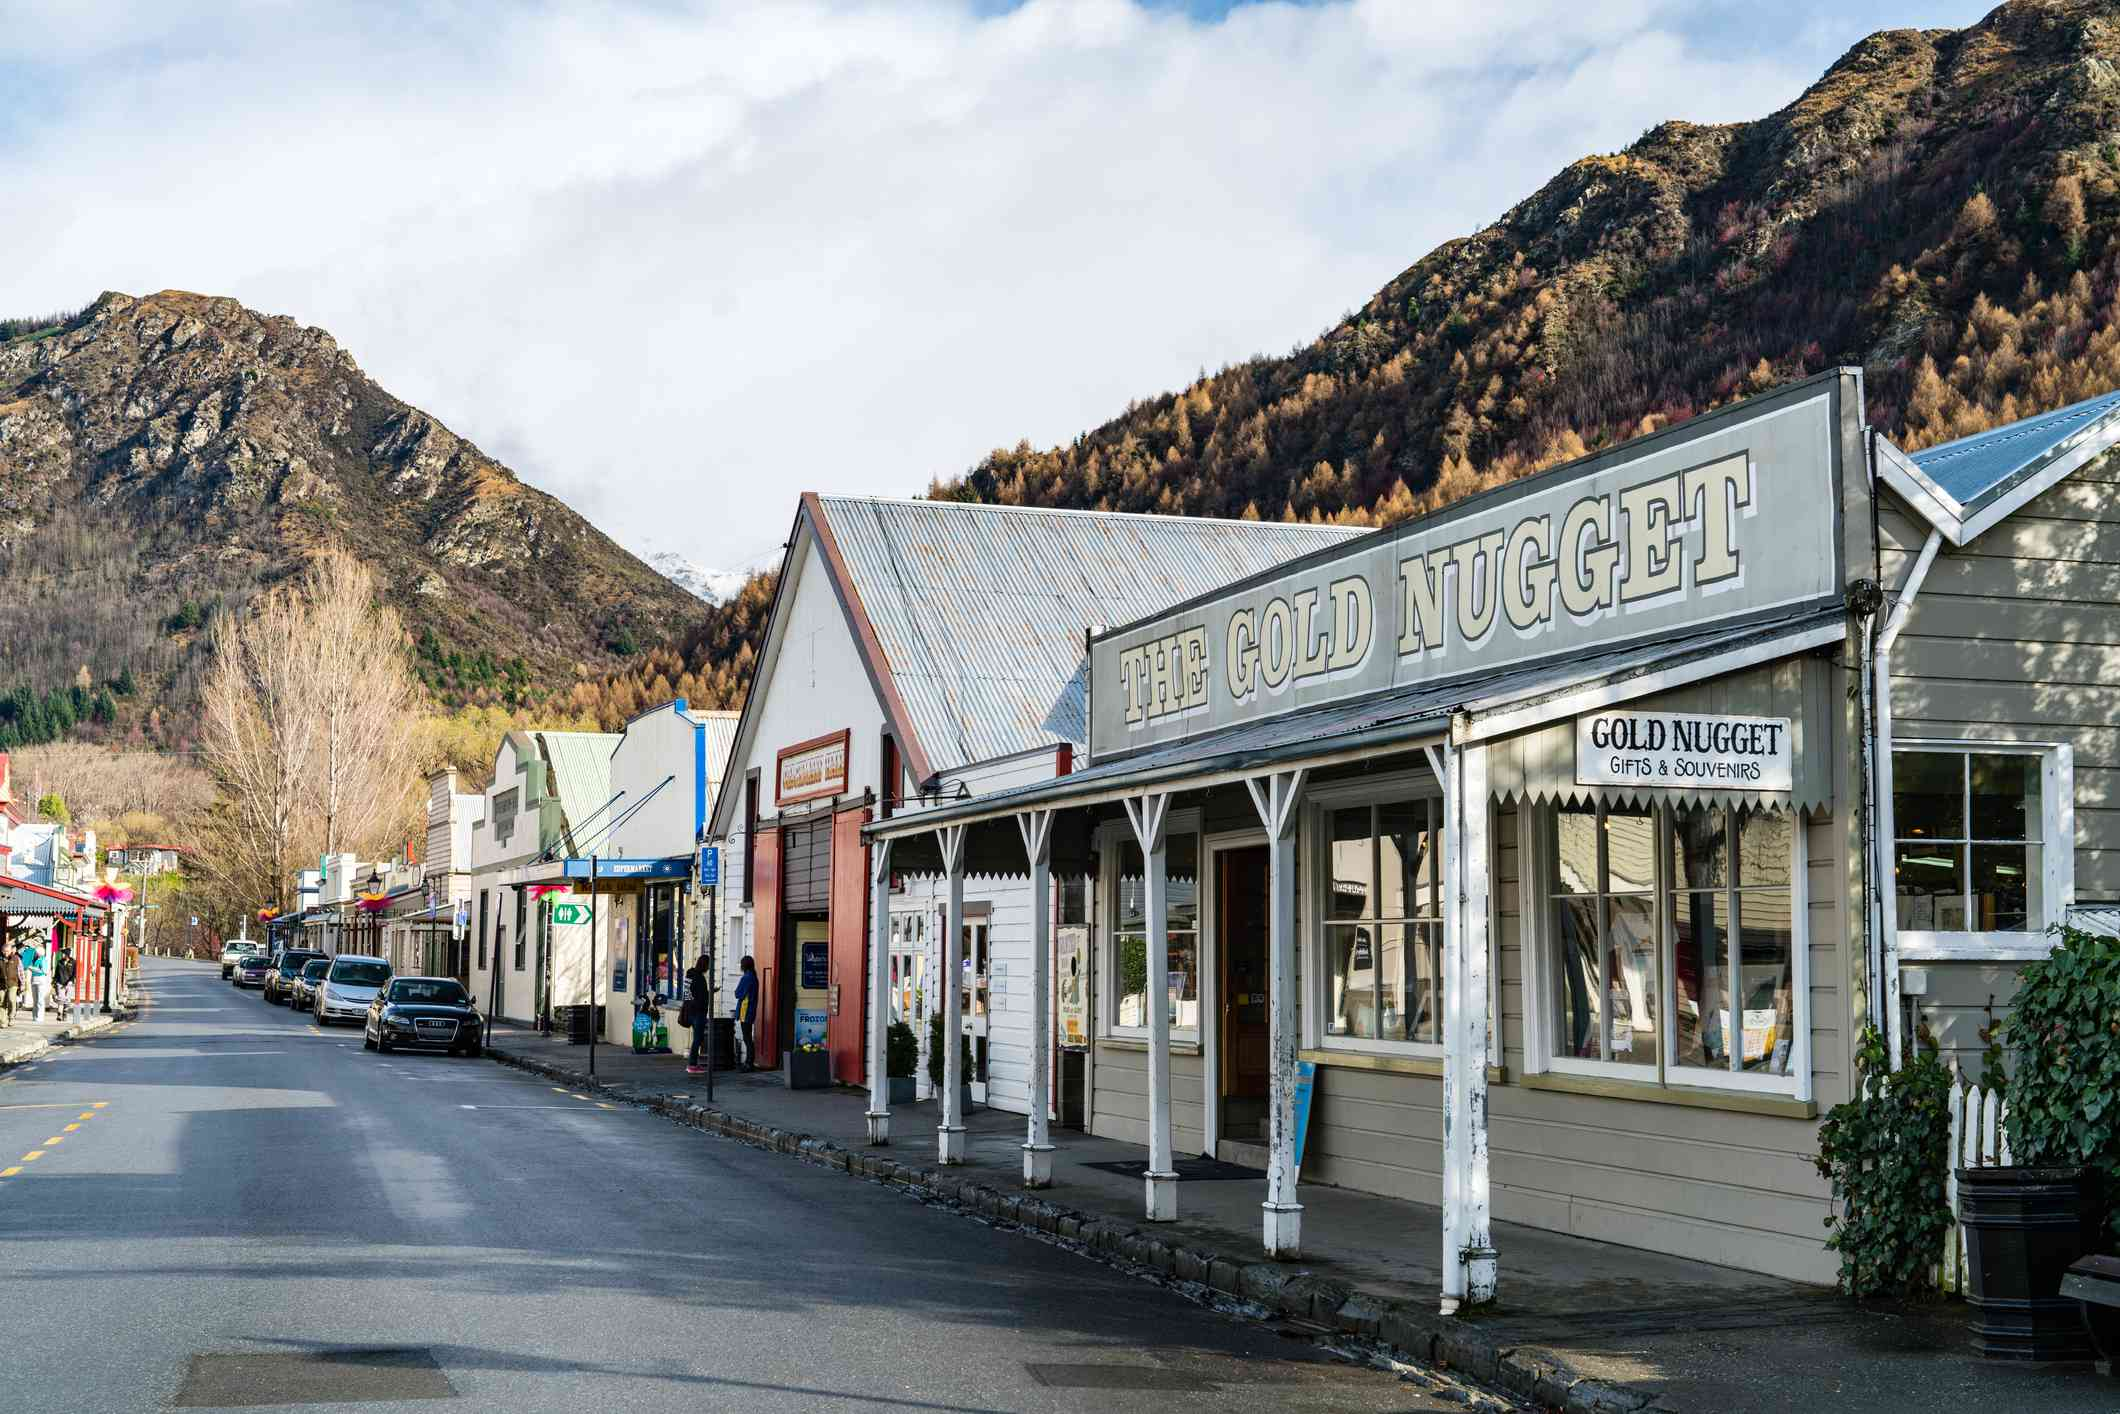 small town street with business on the side of a road and rock mountains in the background